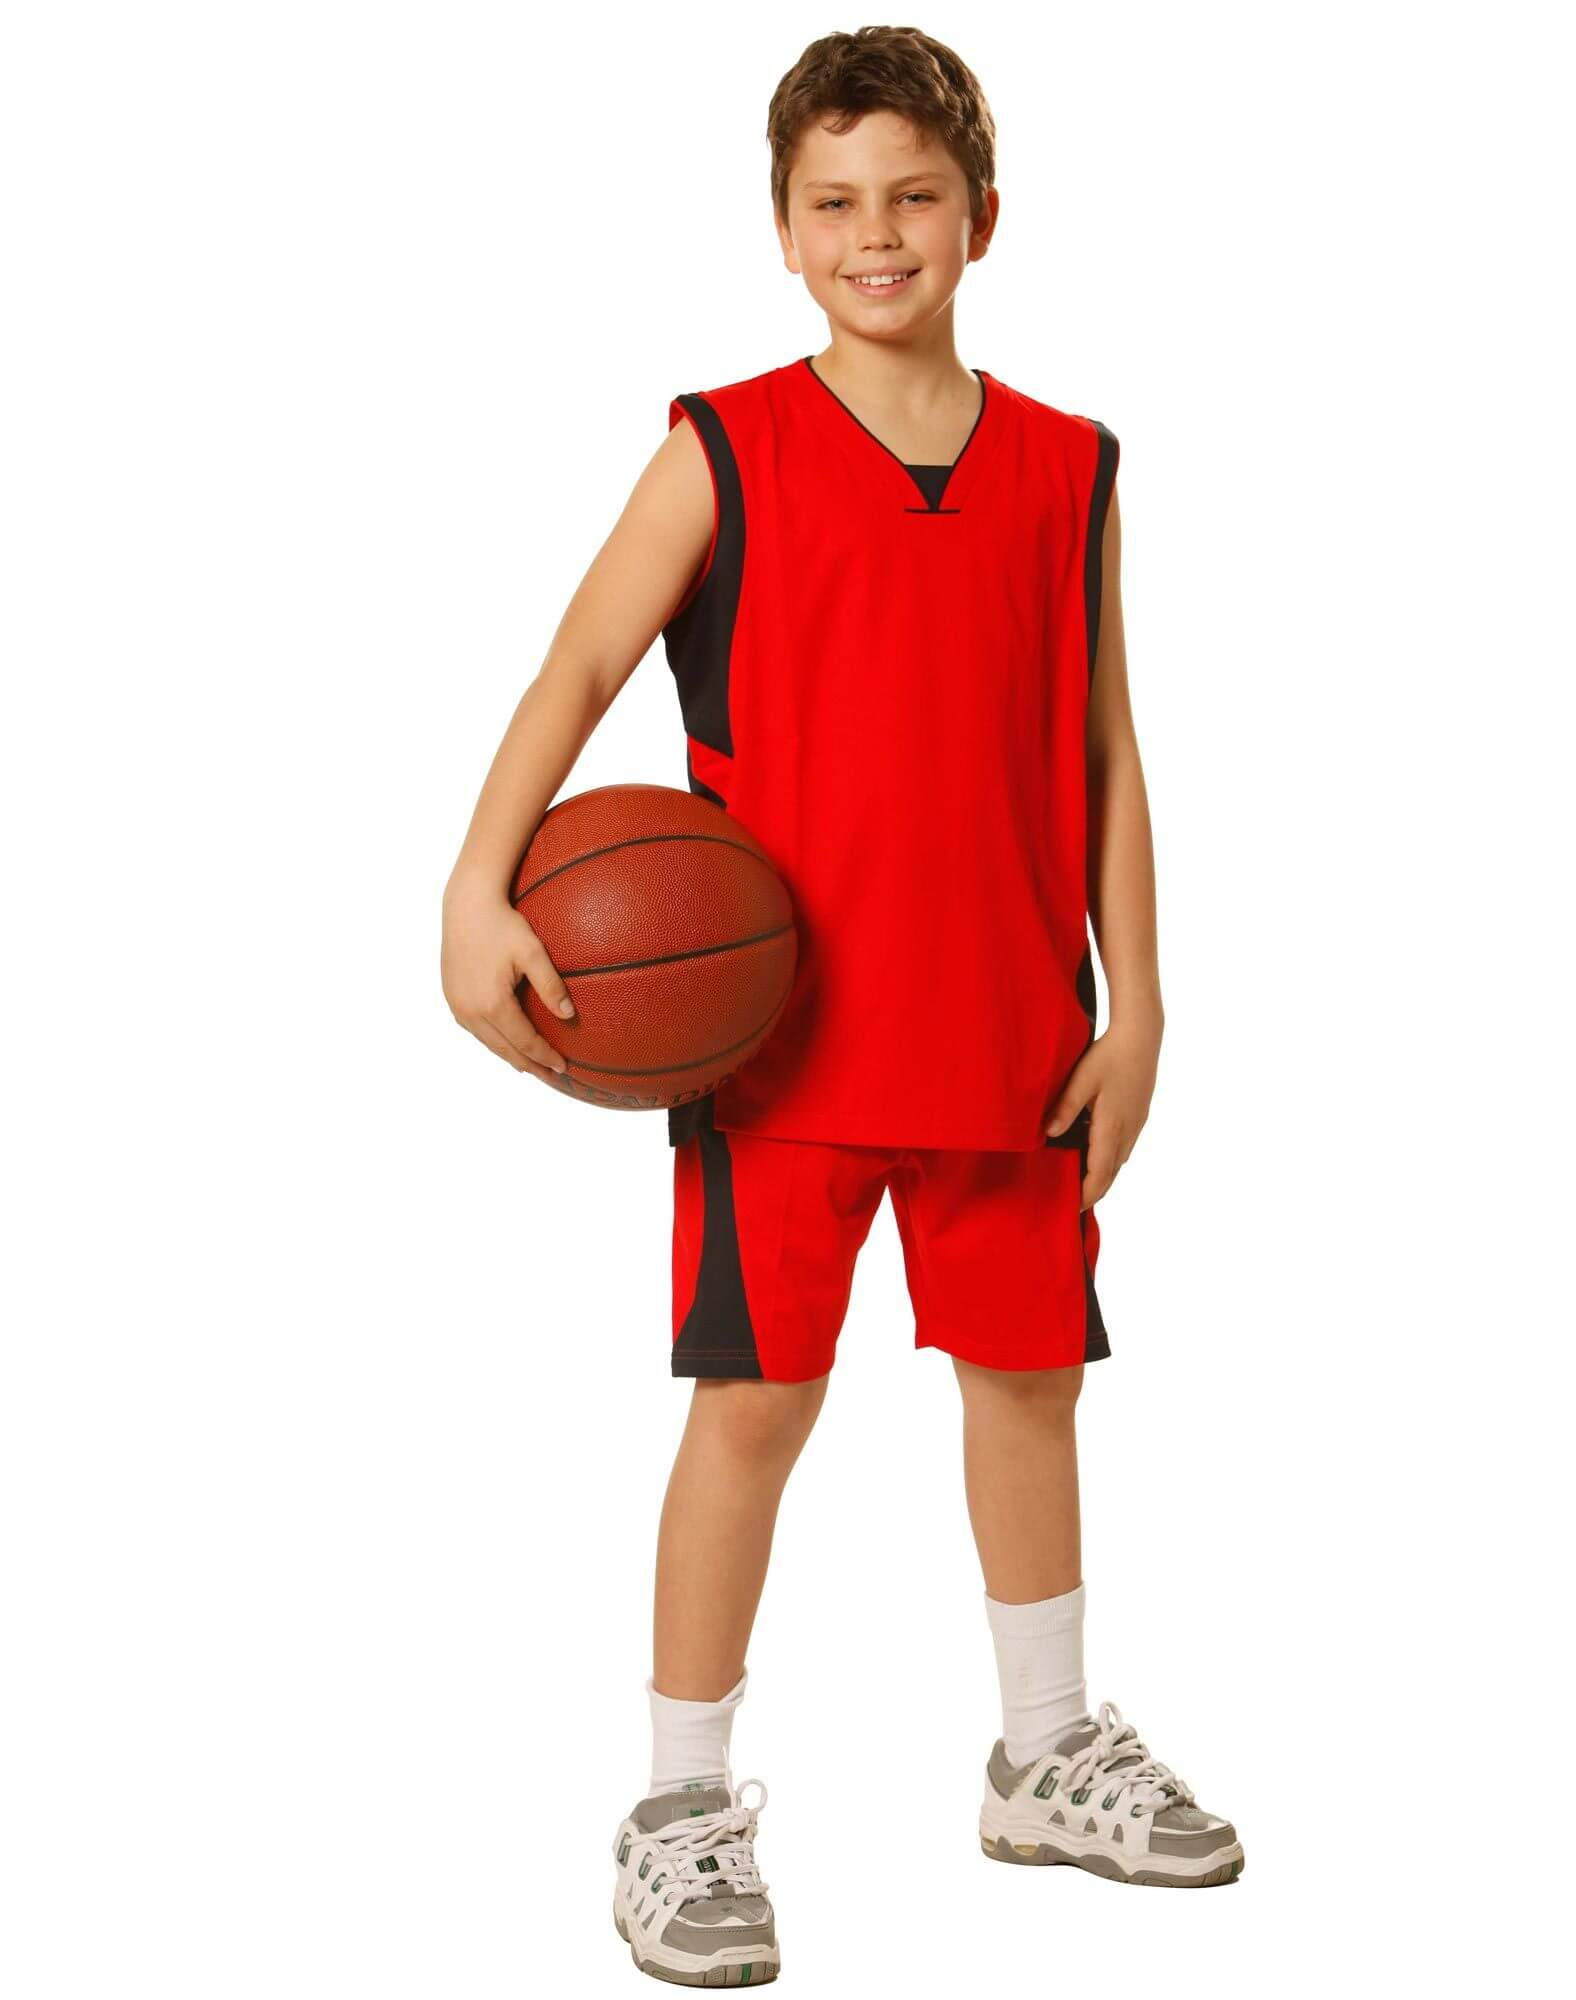 Kids Basketball Jerseys Manufacturers in Noida